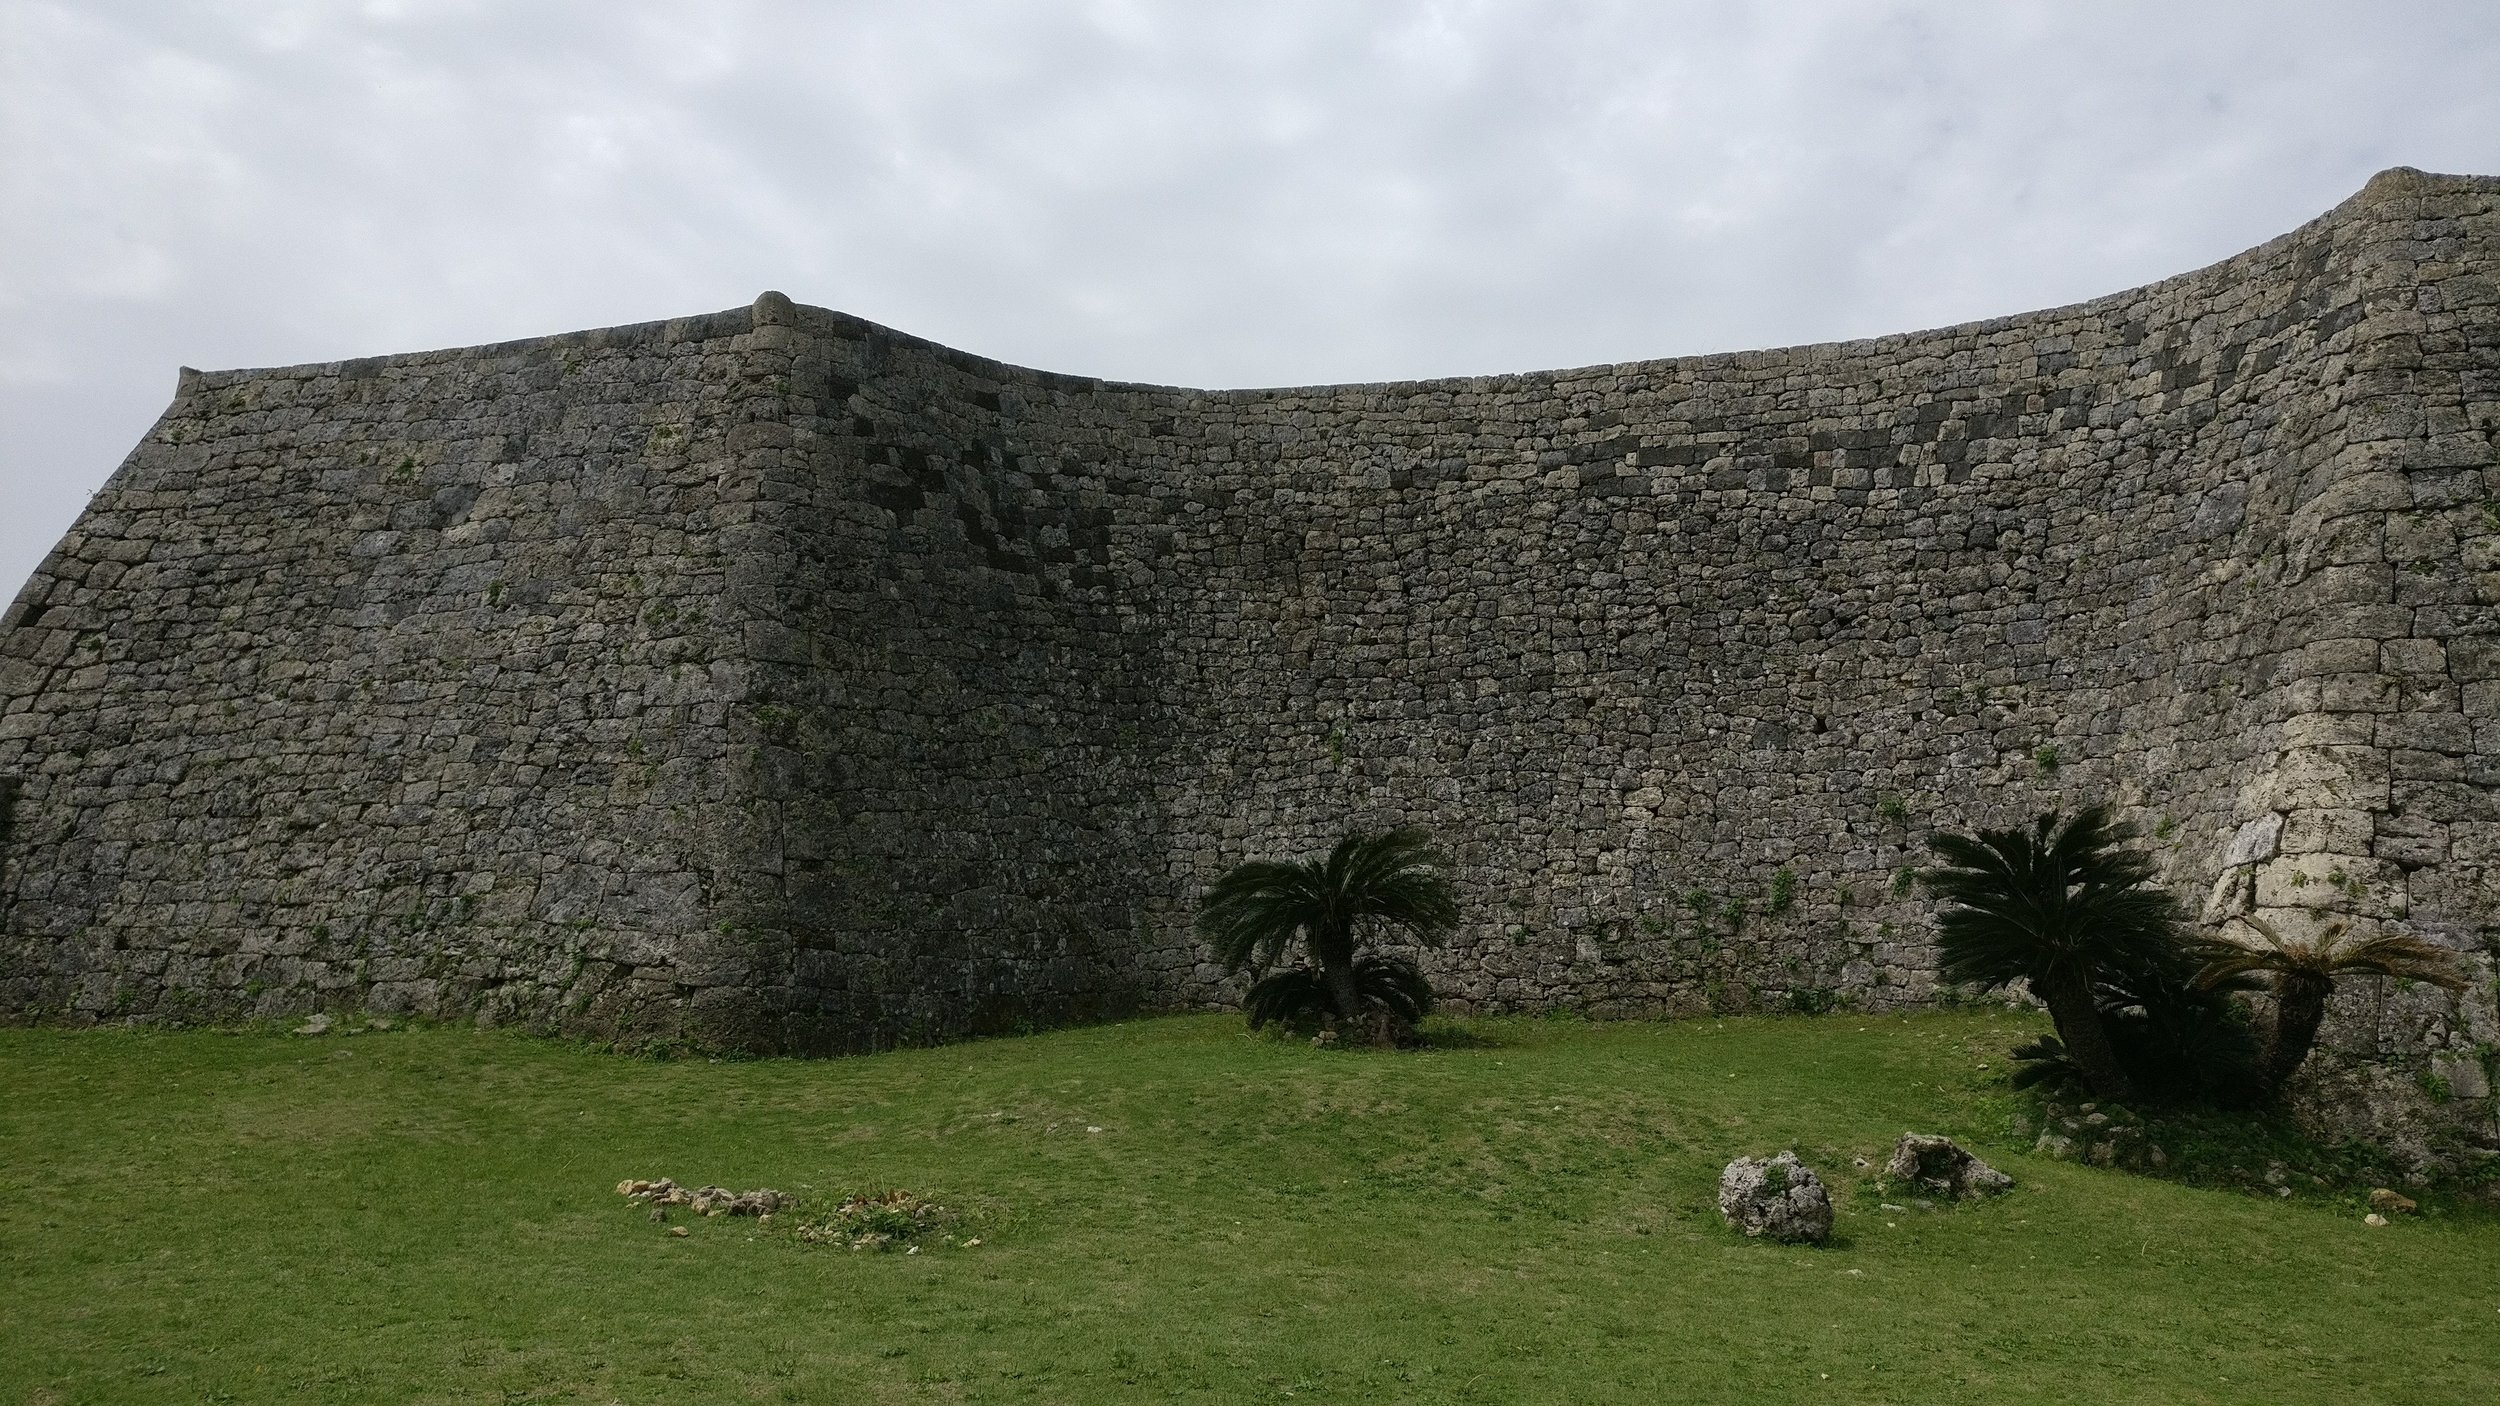 A formidable wall from the remnance of Nakagusuku Castle